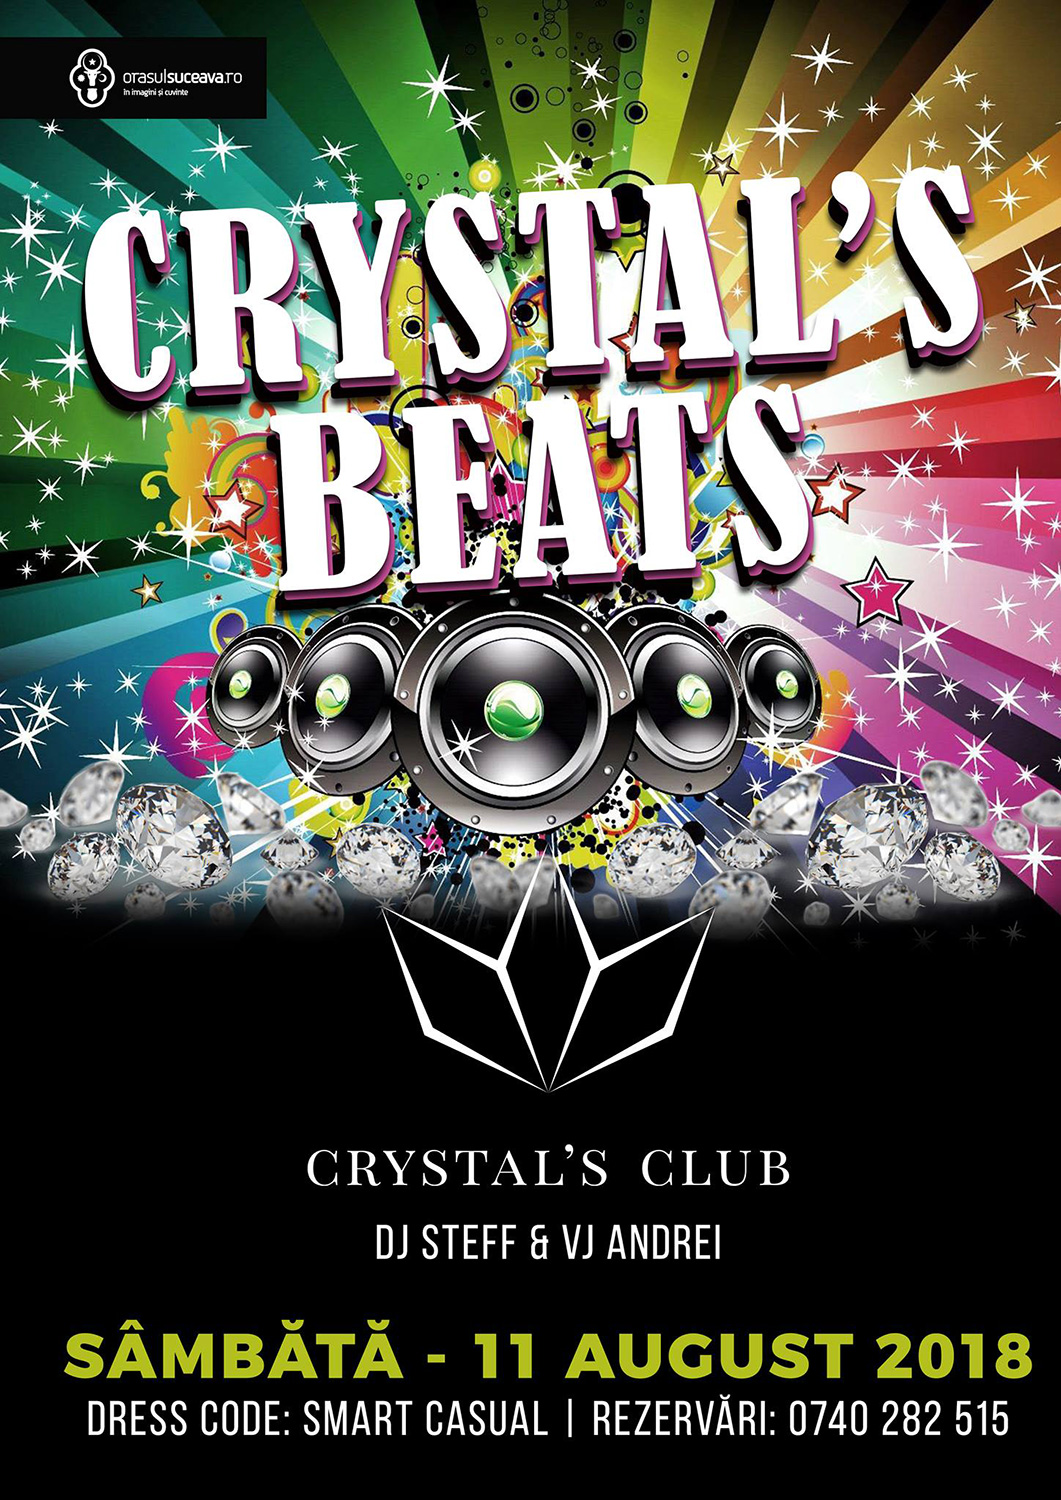 Crystal's Beats